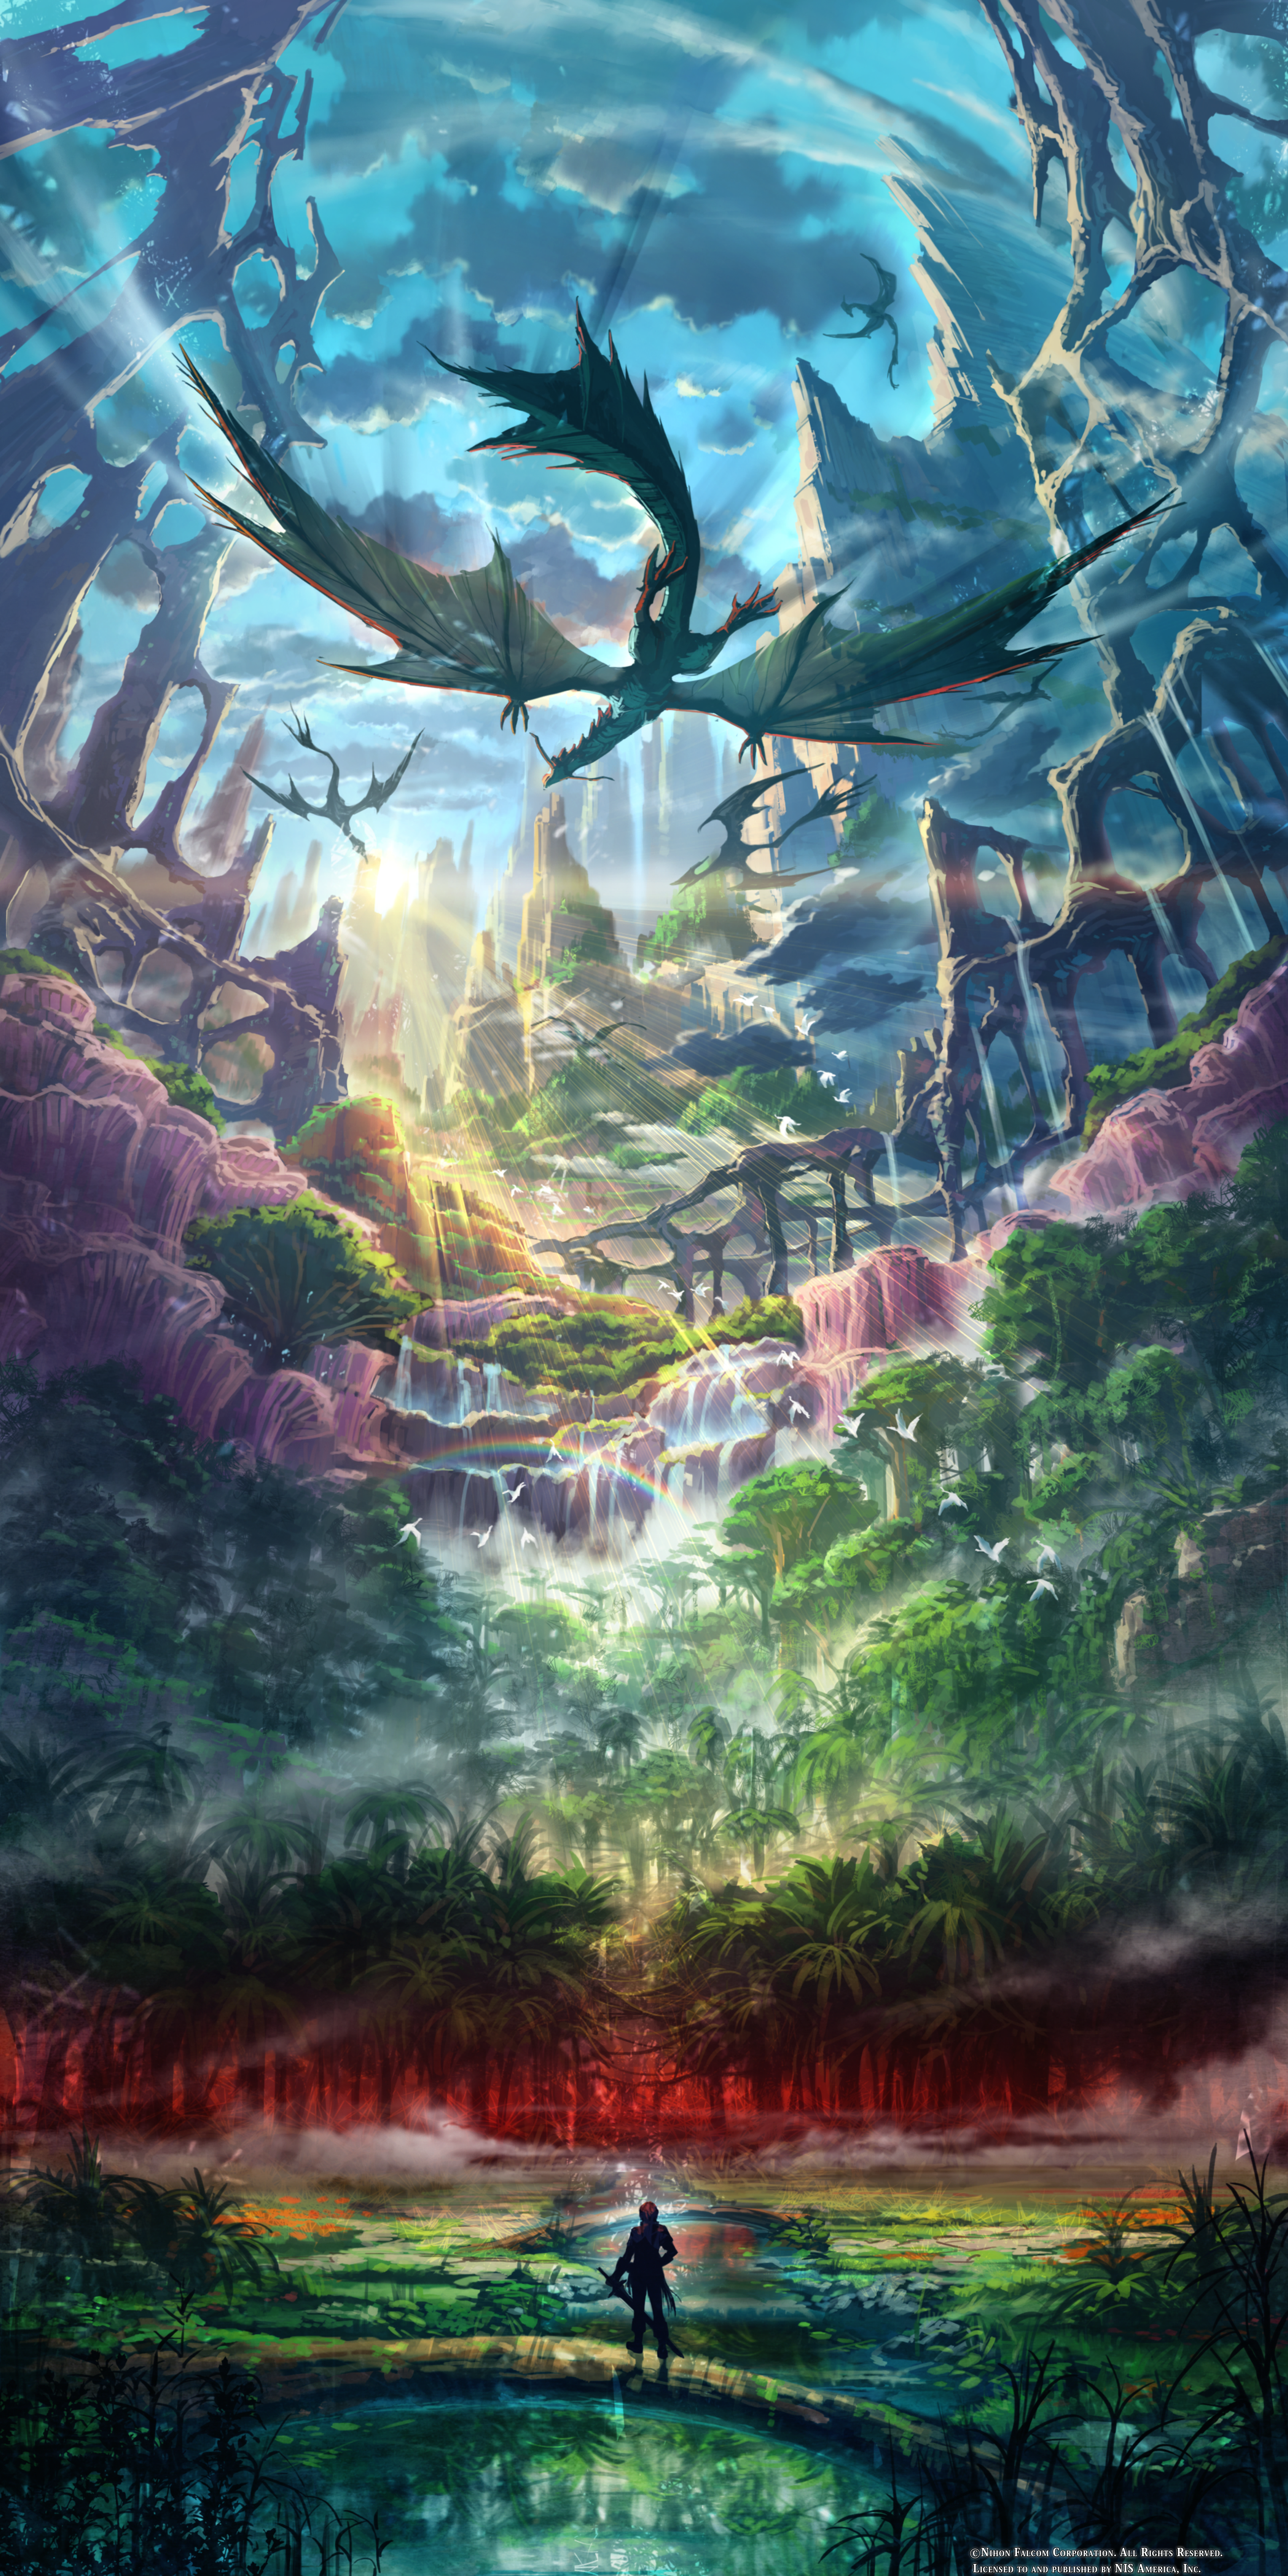 Ys Viii Lacrimosa Of Dana World Concept Artwork By Wowan14 On